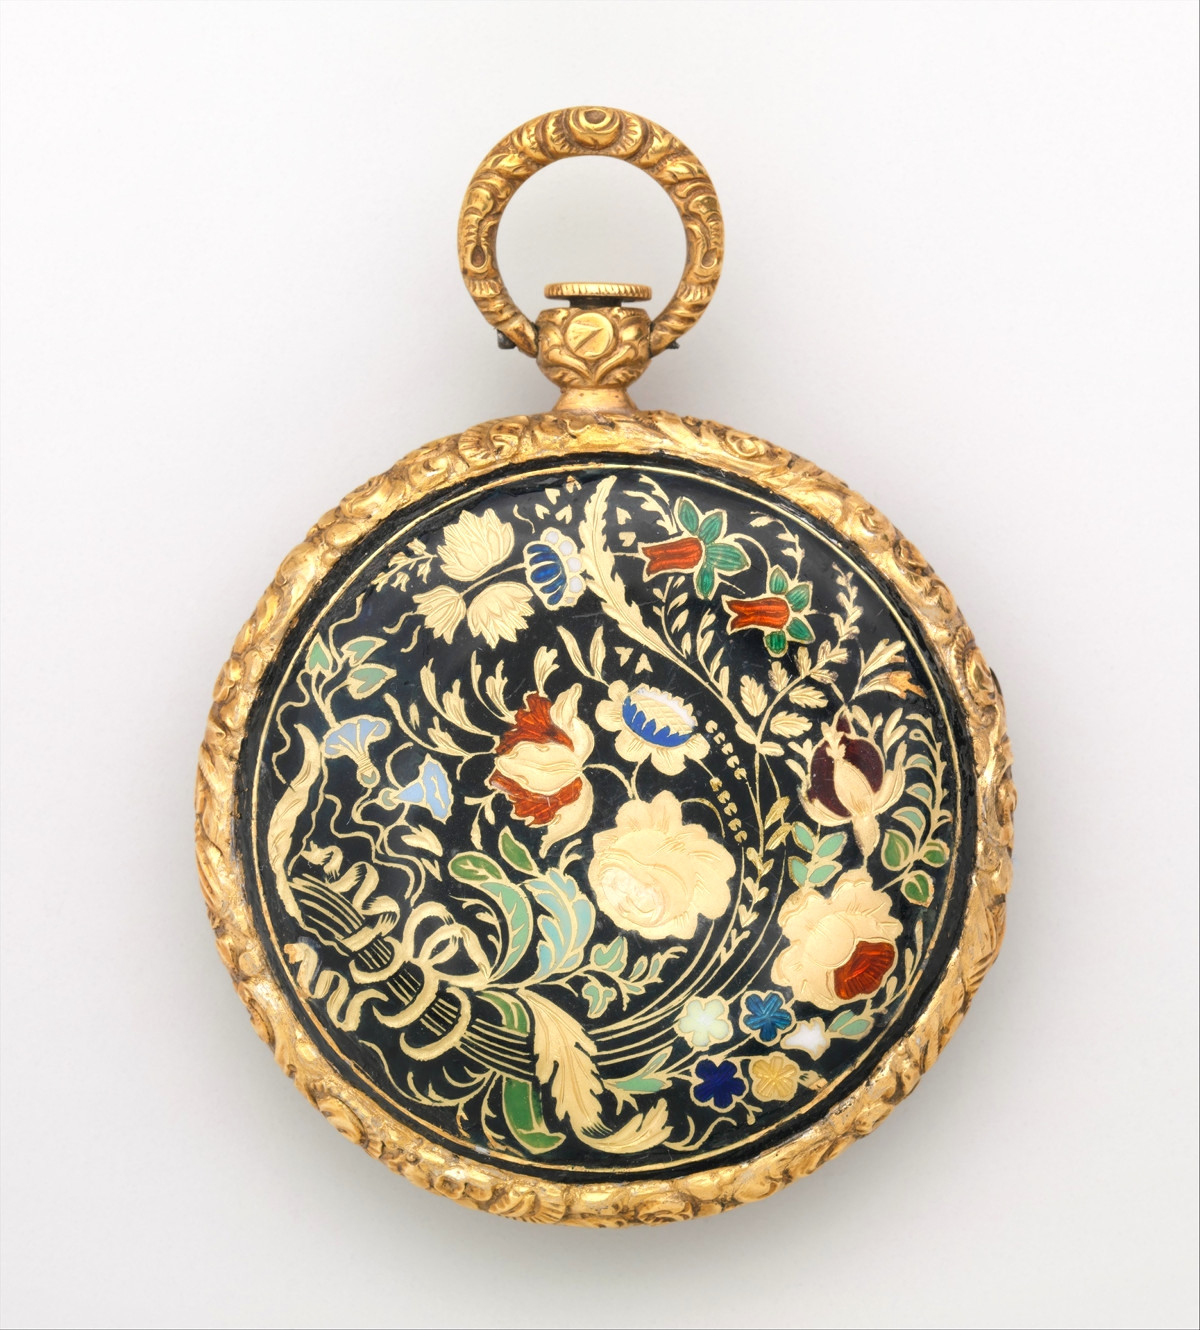 1822. Watch. French, Lyon. Case of gold and enamel, with floral design; jeweled movement, with cylinder escapement. metmuseum